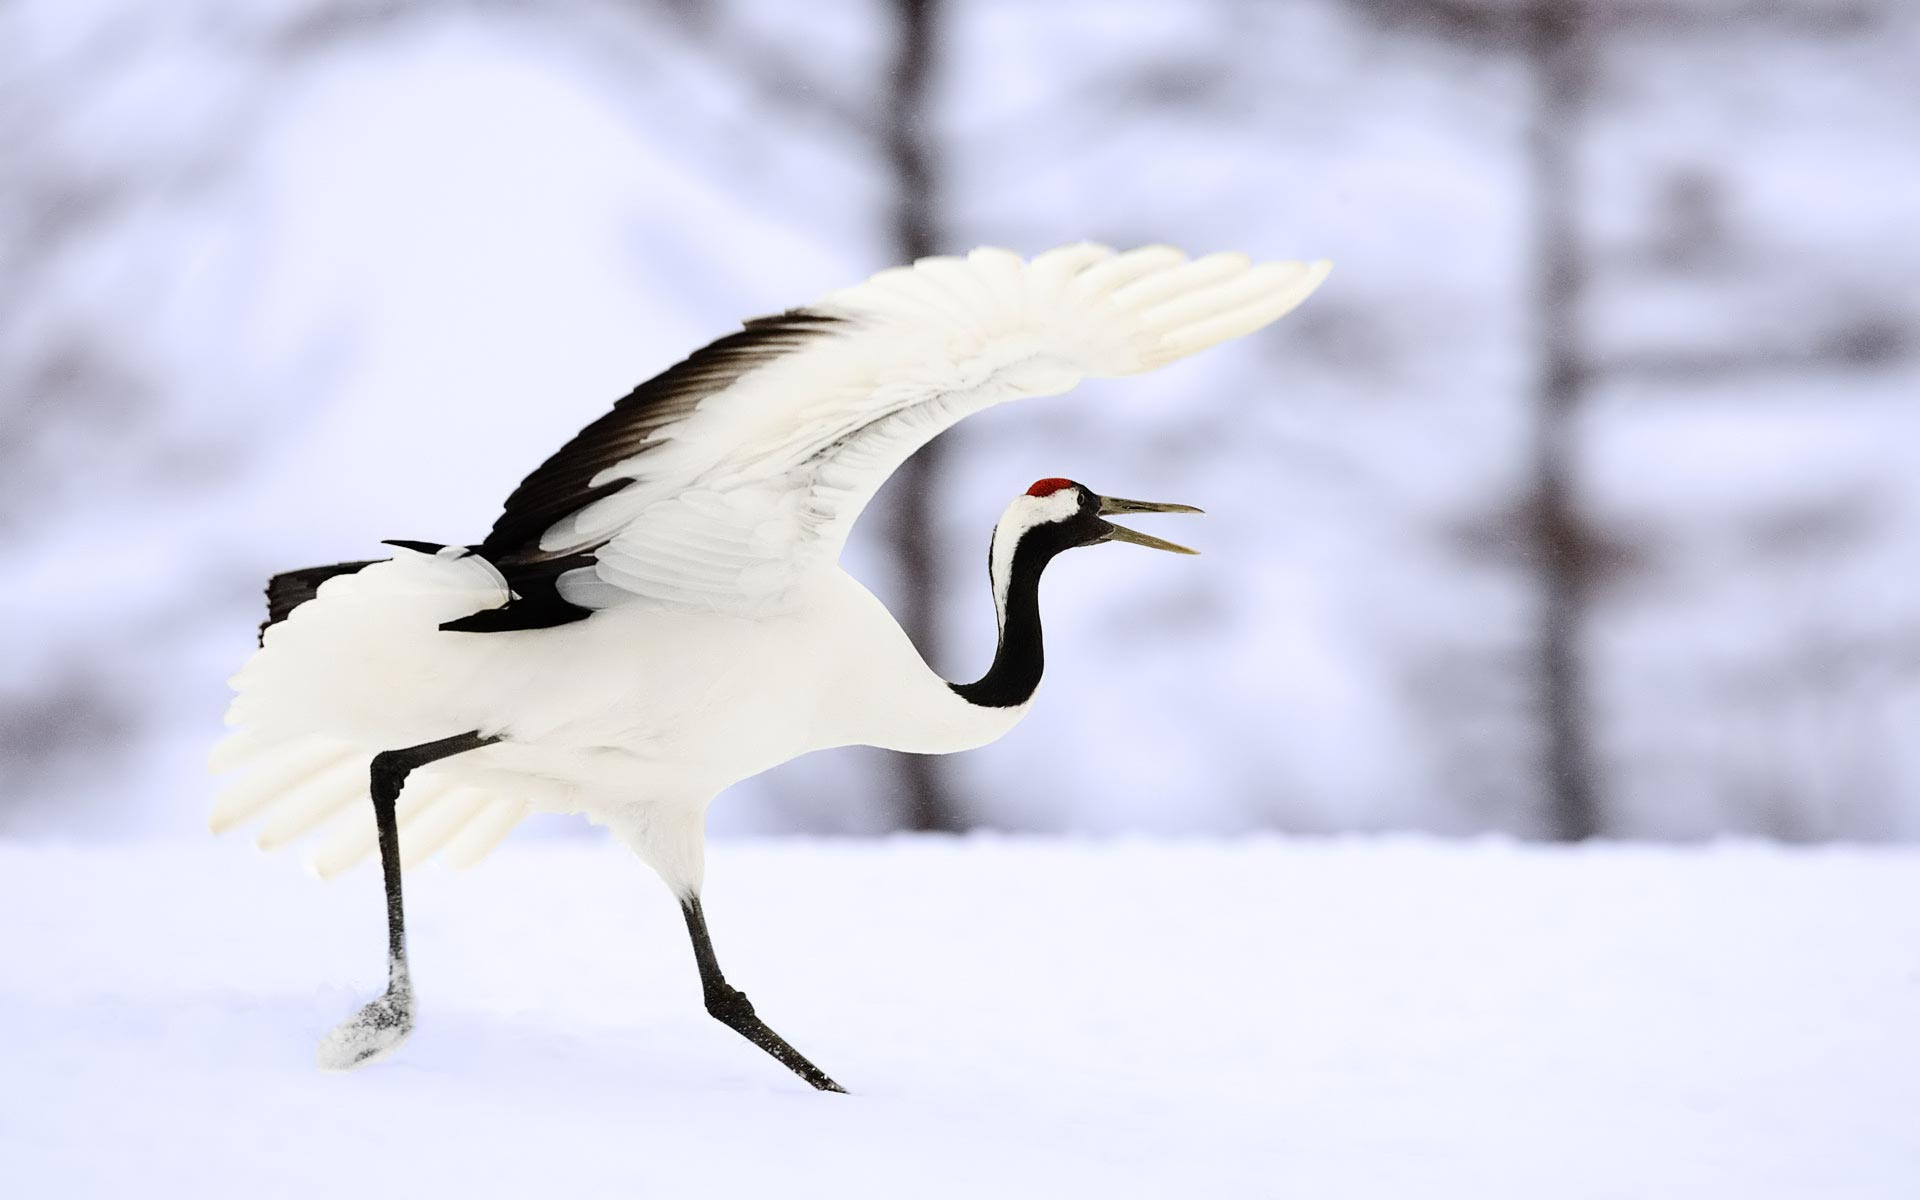 Lovely Crane Bird Wallpaper